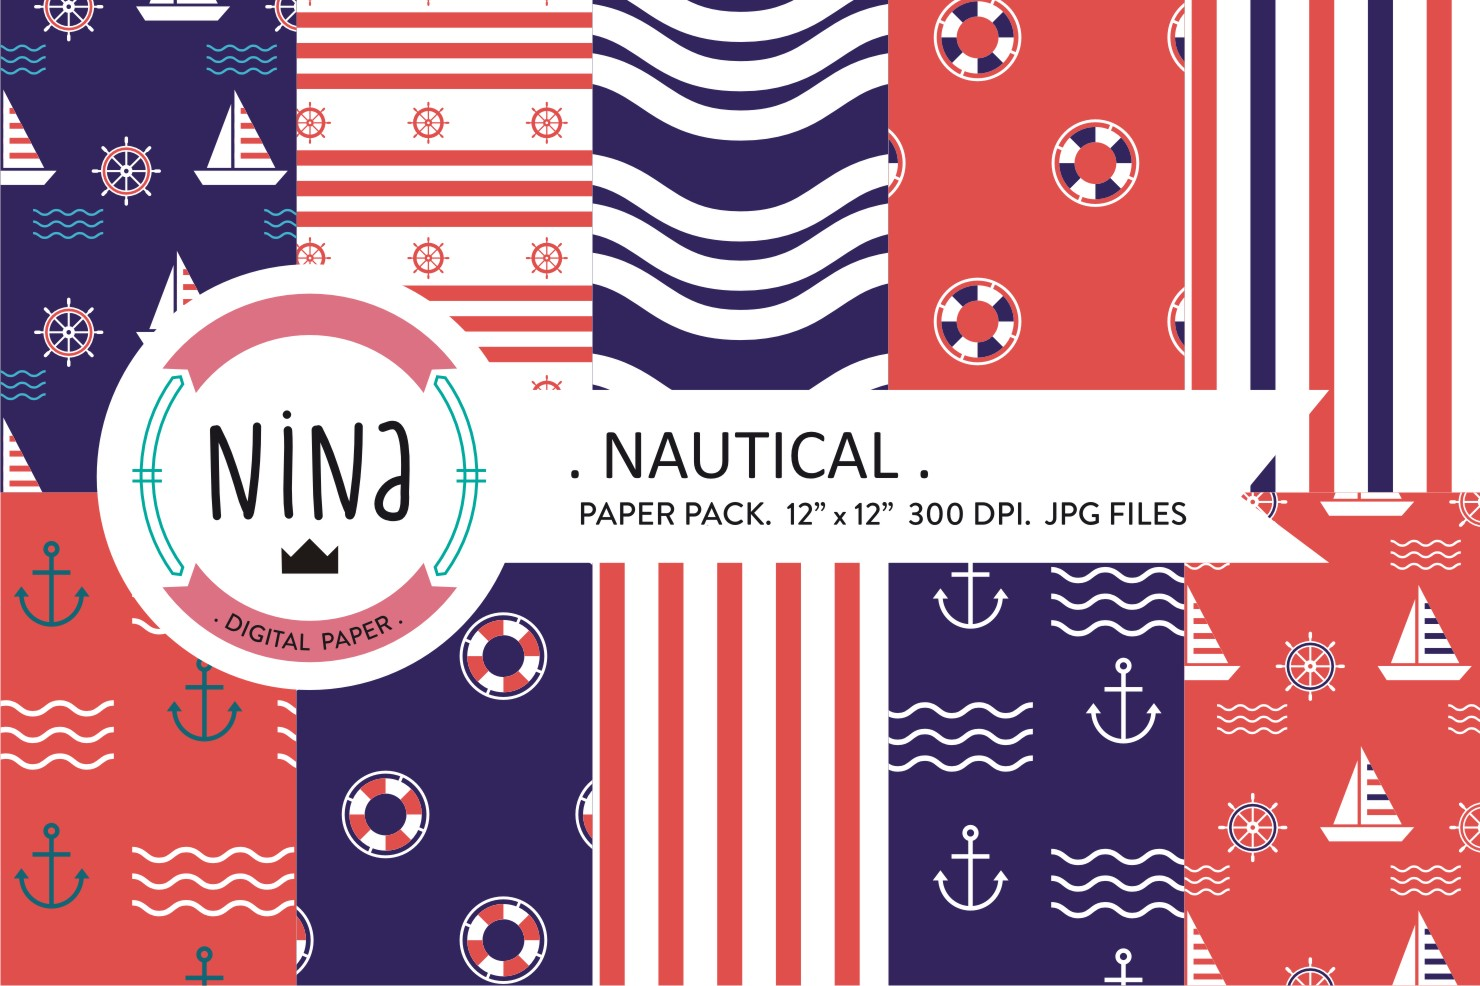 Navy digital paper, Nautical wrapping paper, Navy papers example image 1